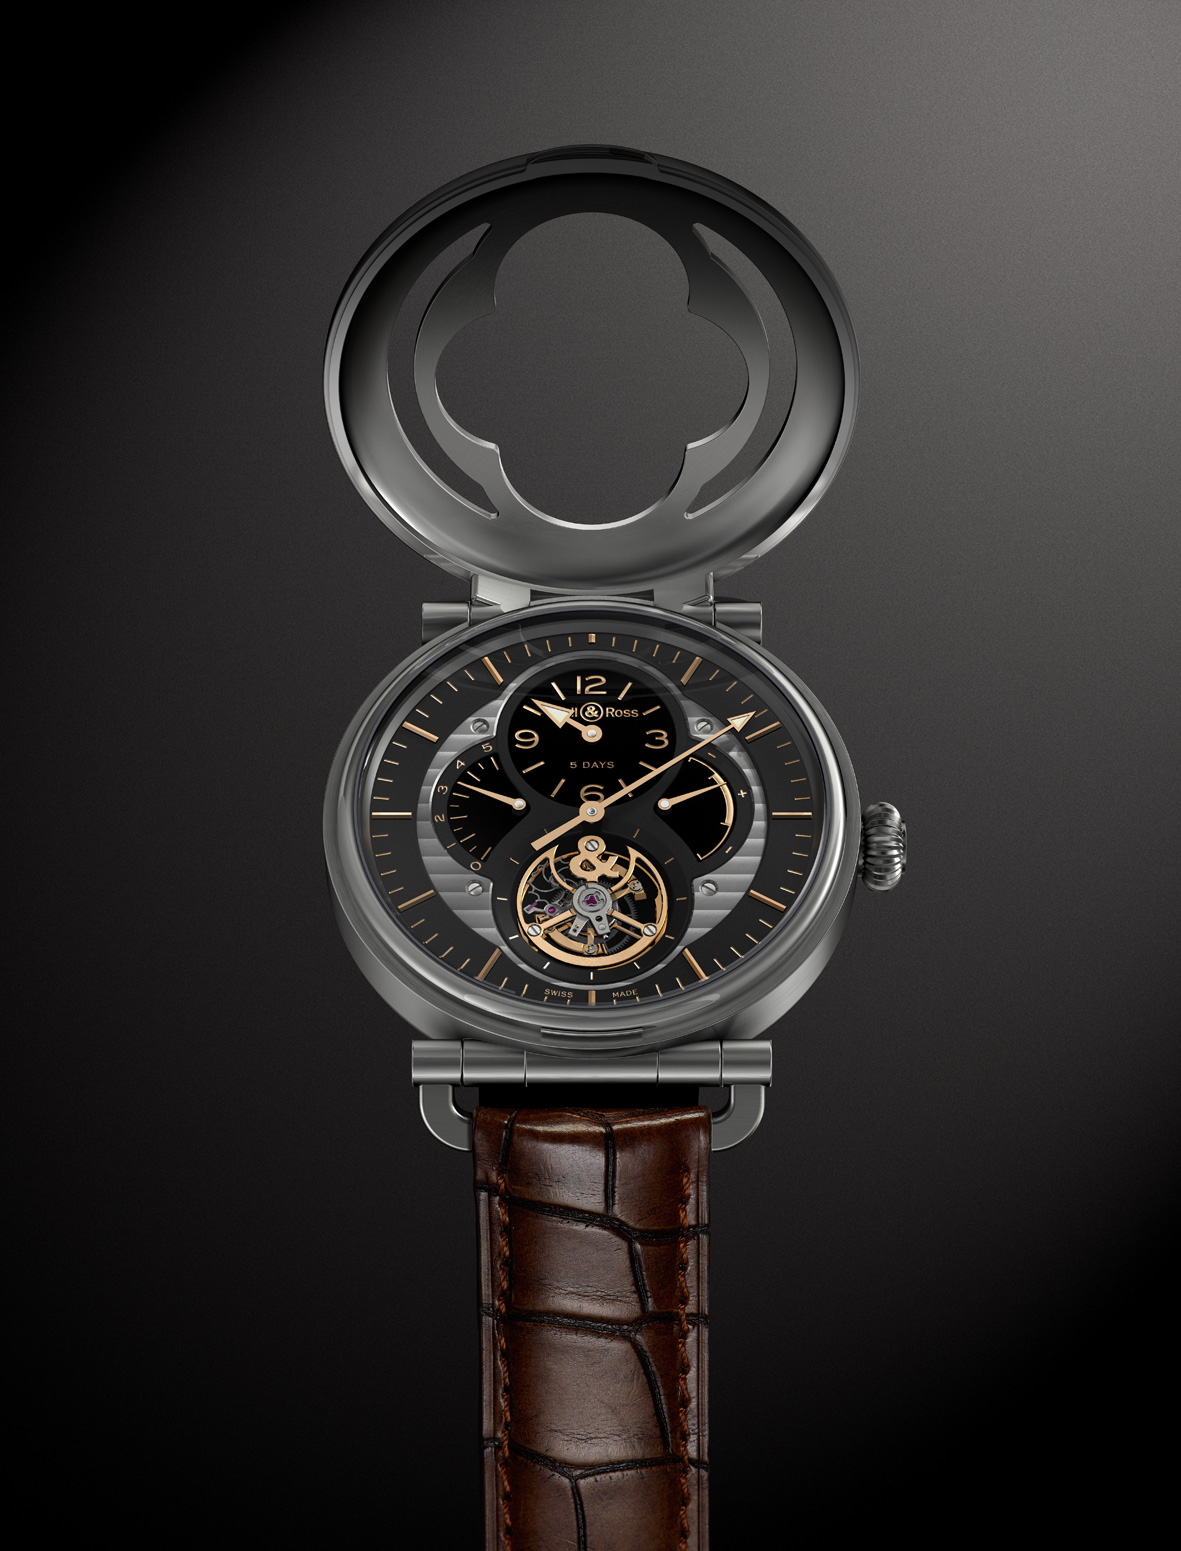 Bell and Ross WW2 Military Tourbillon abierto